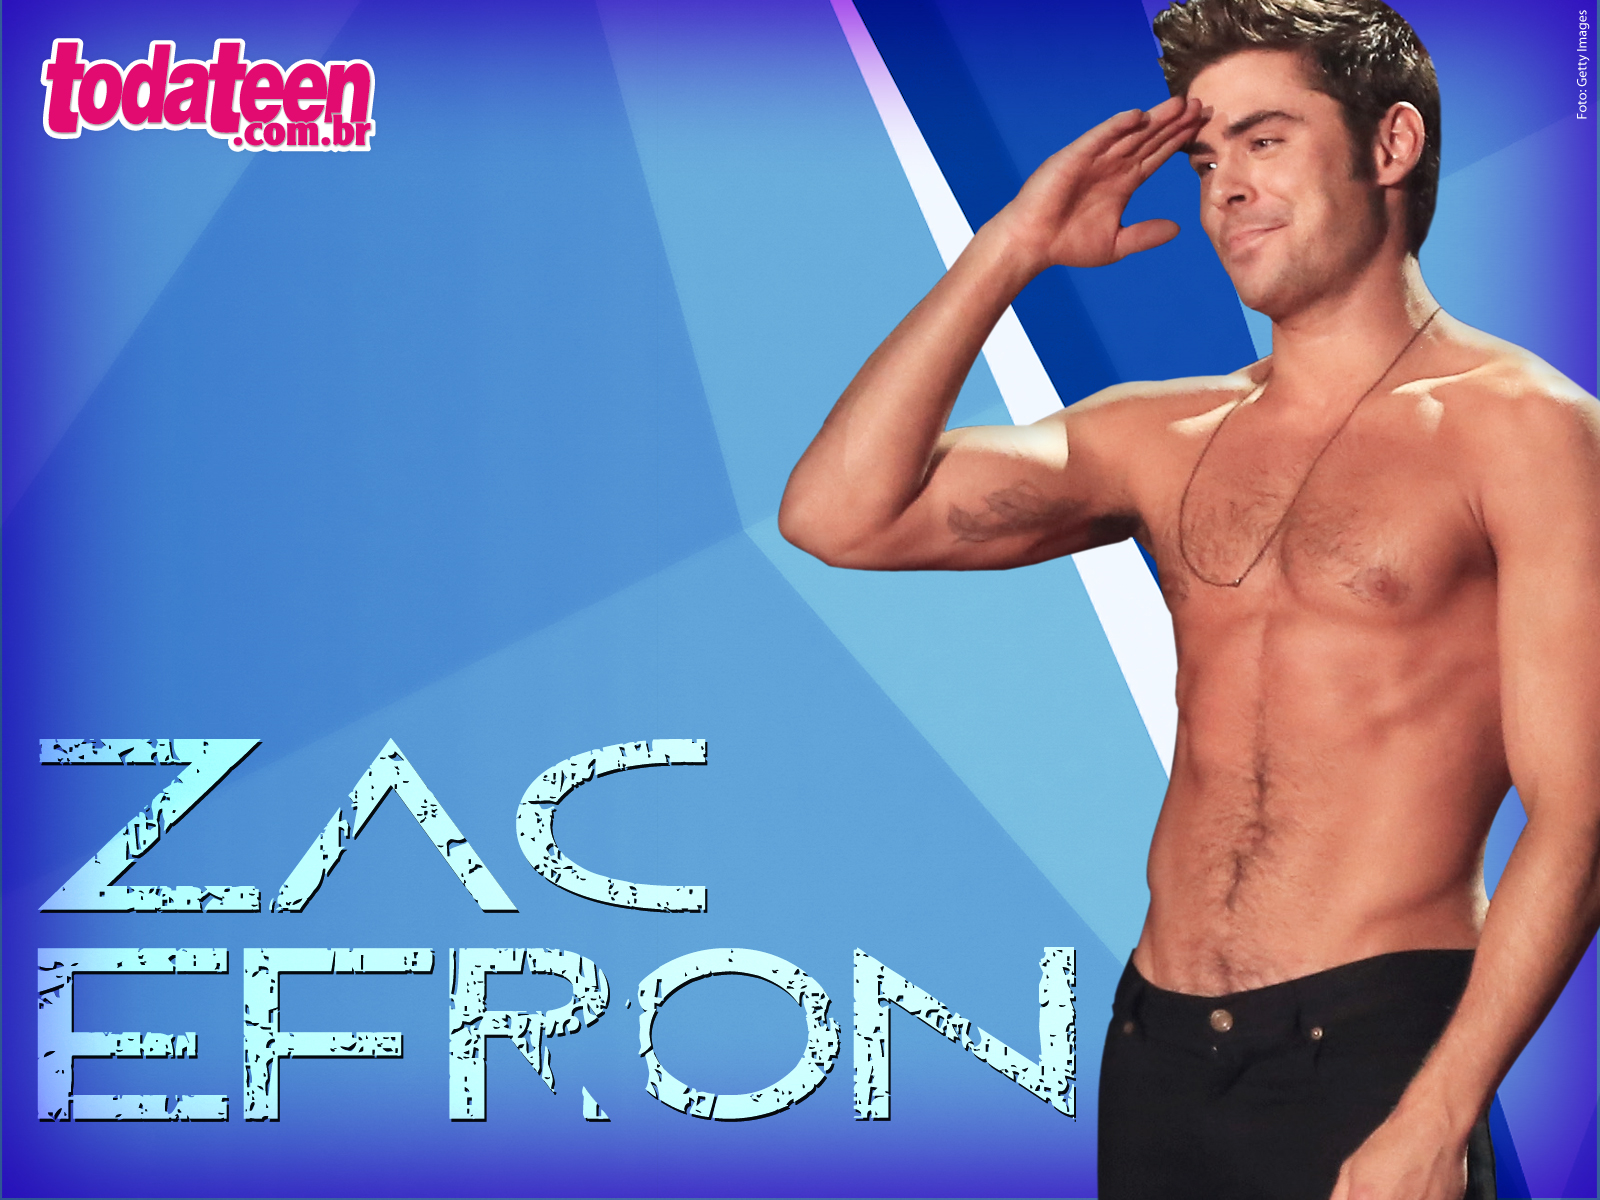 Zac Efron Wallpaper (Fullscreen)